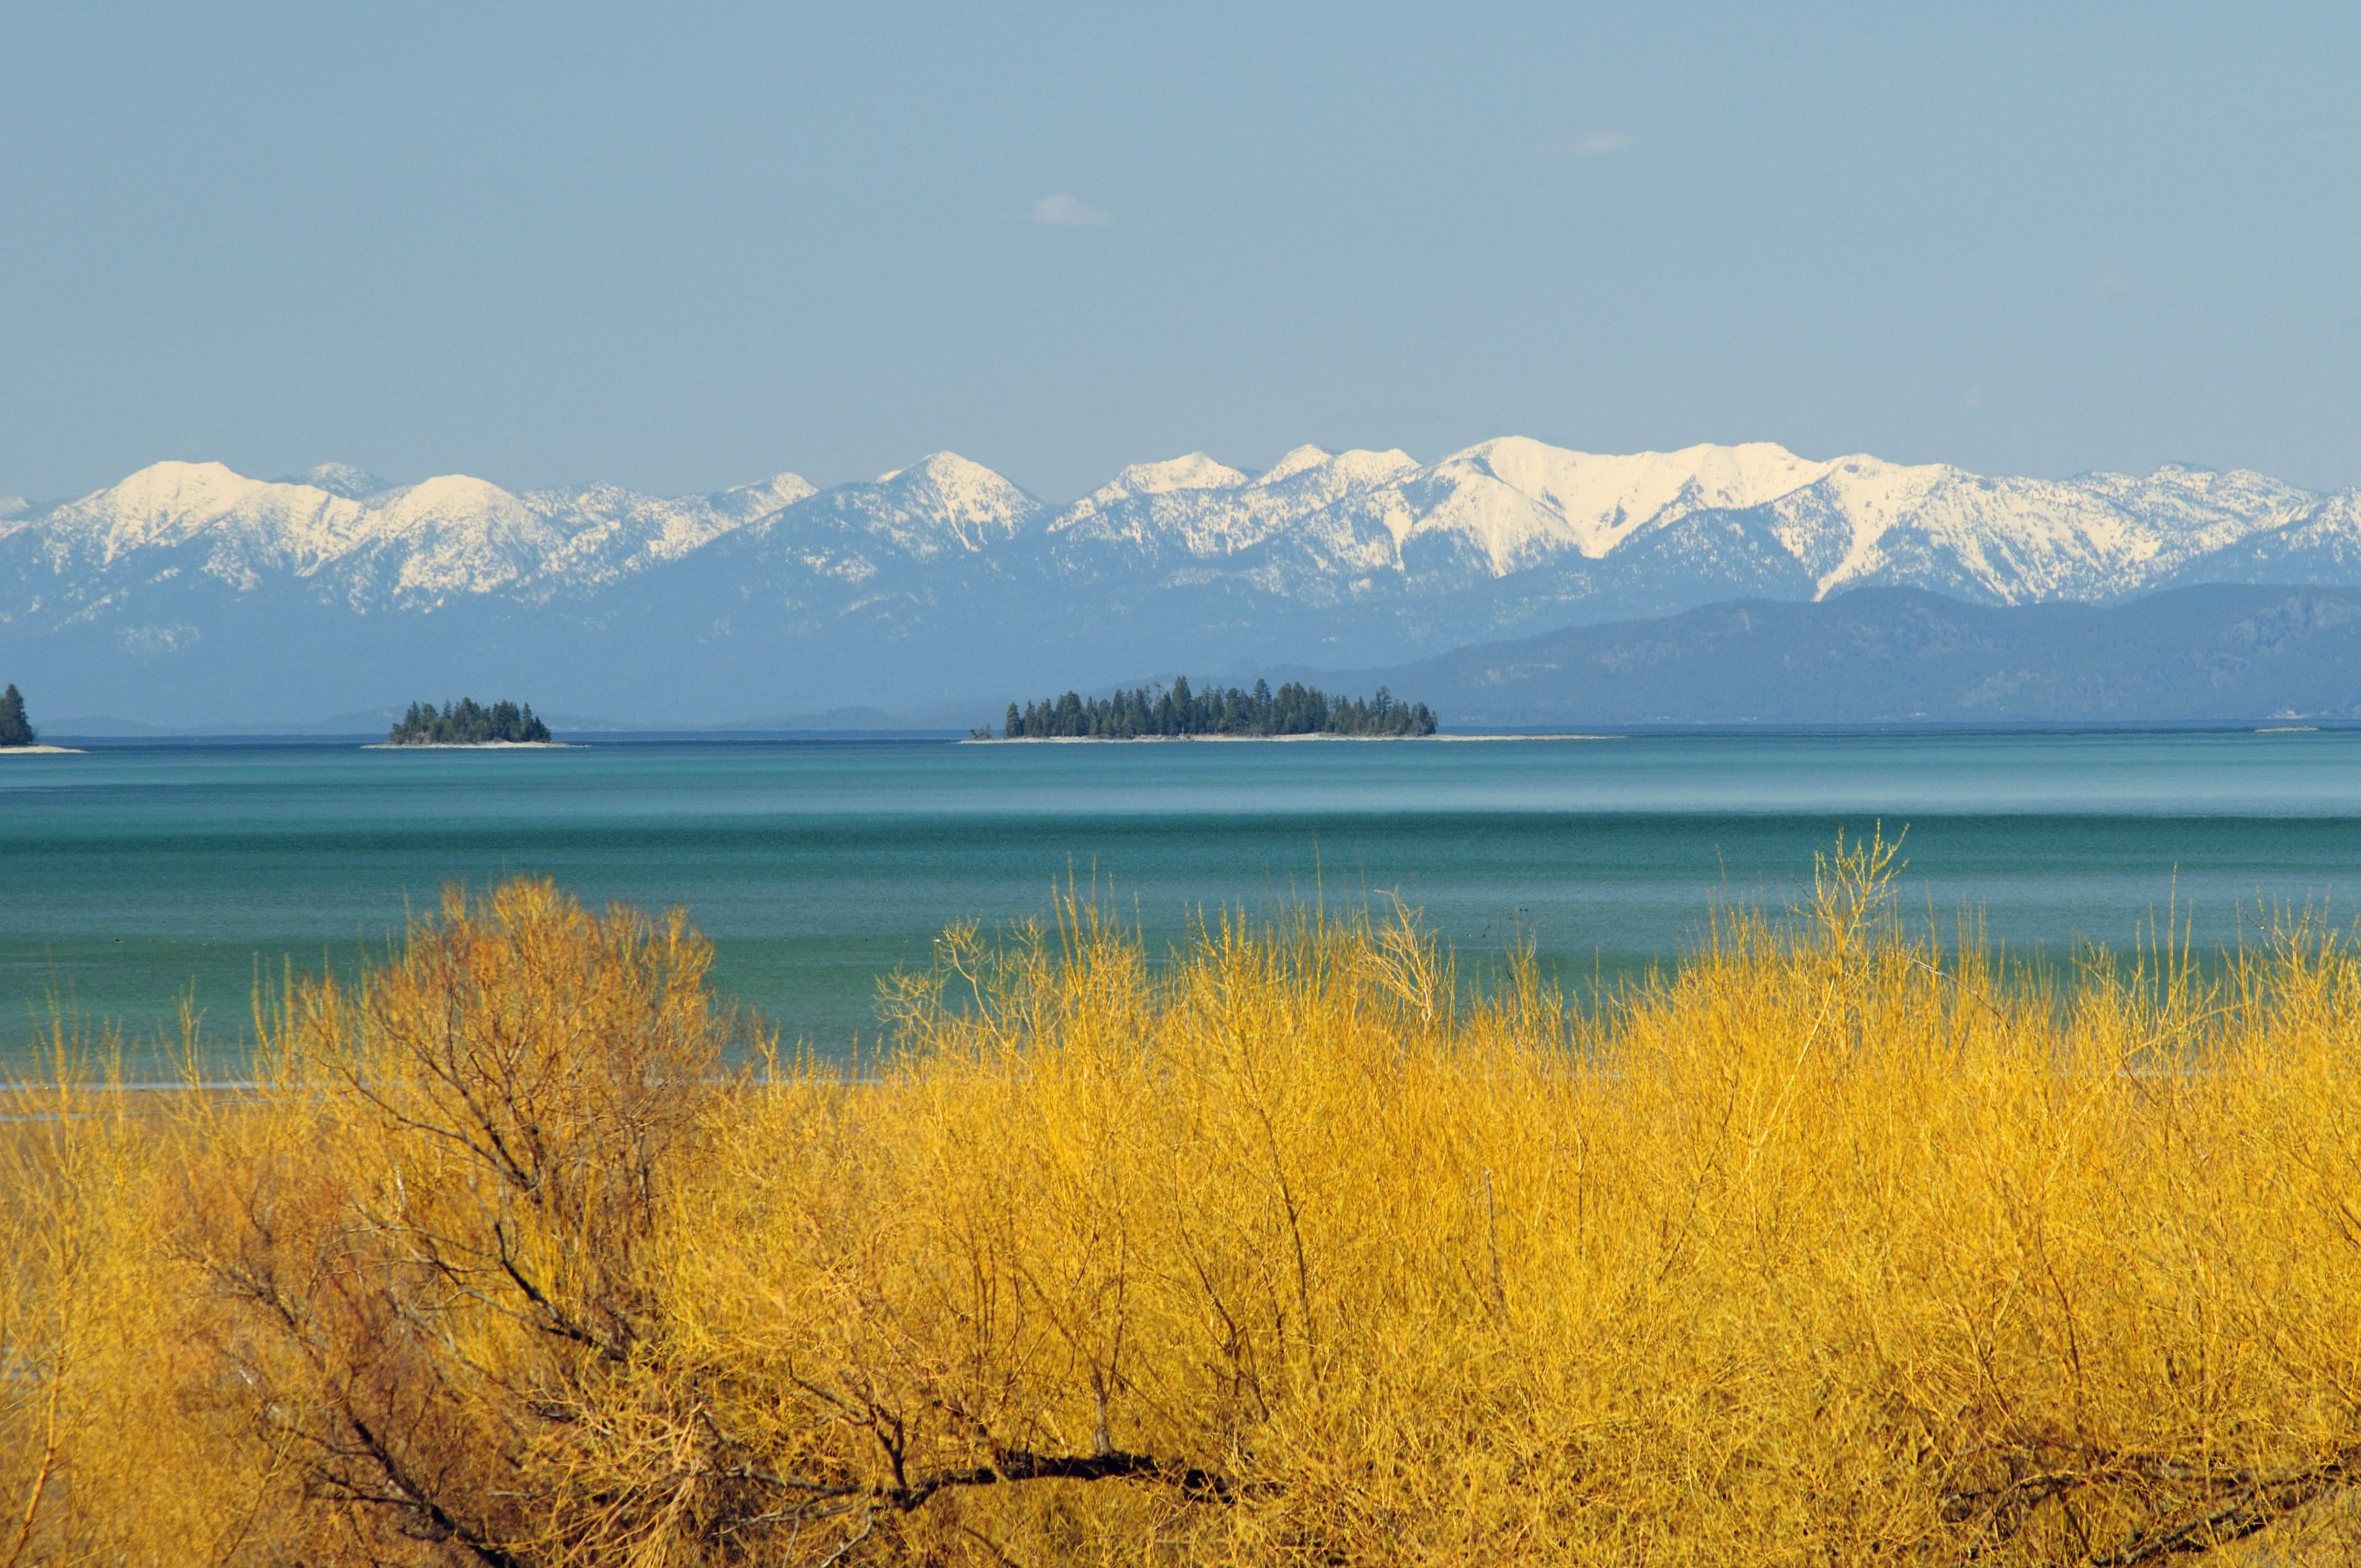 Spring comes to Flathead Lake while the Swan Range is still cloaked in winter.